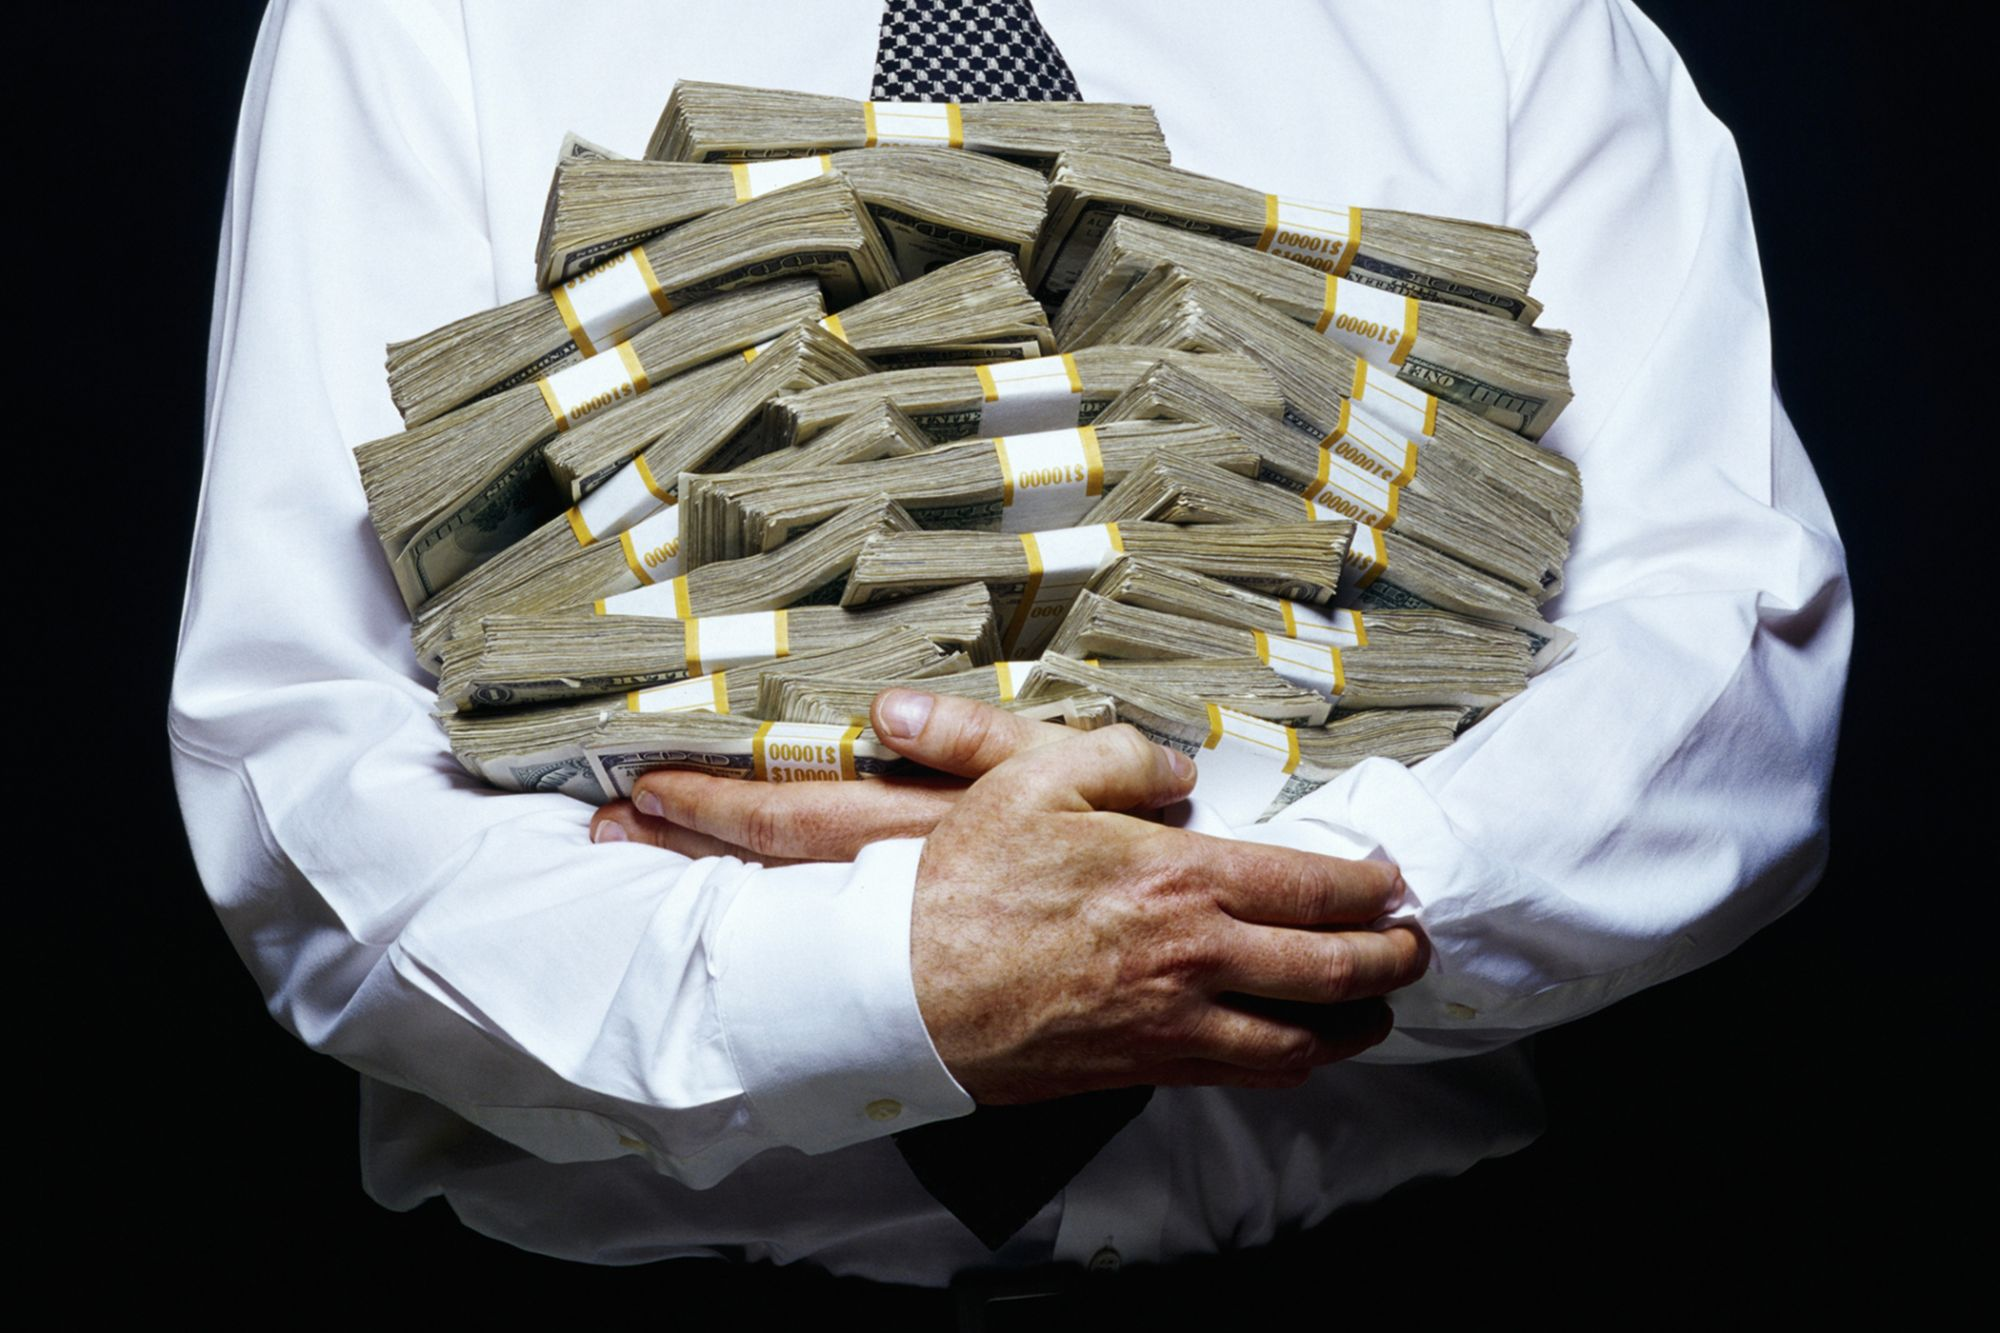 Top 10 Legal Ways To Become A Millionaire In Nigeria